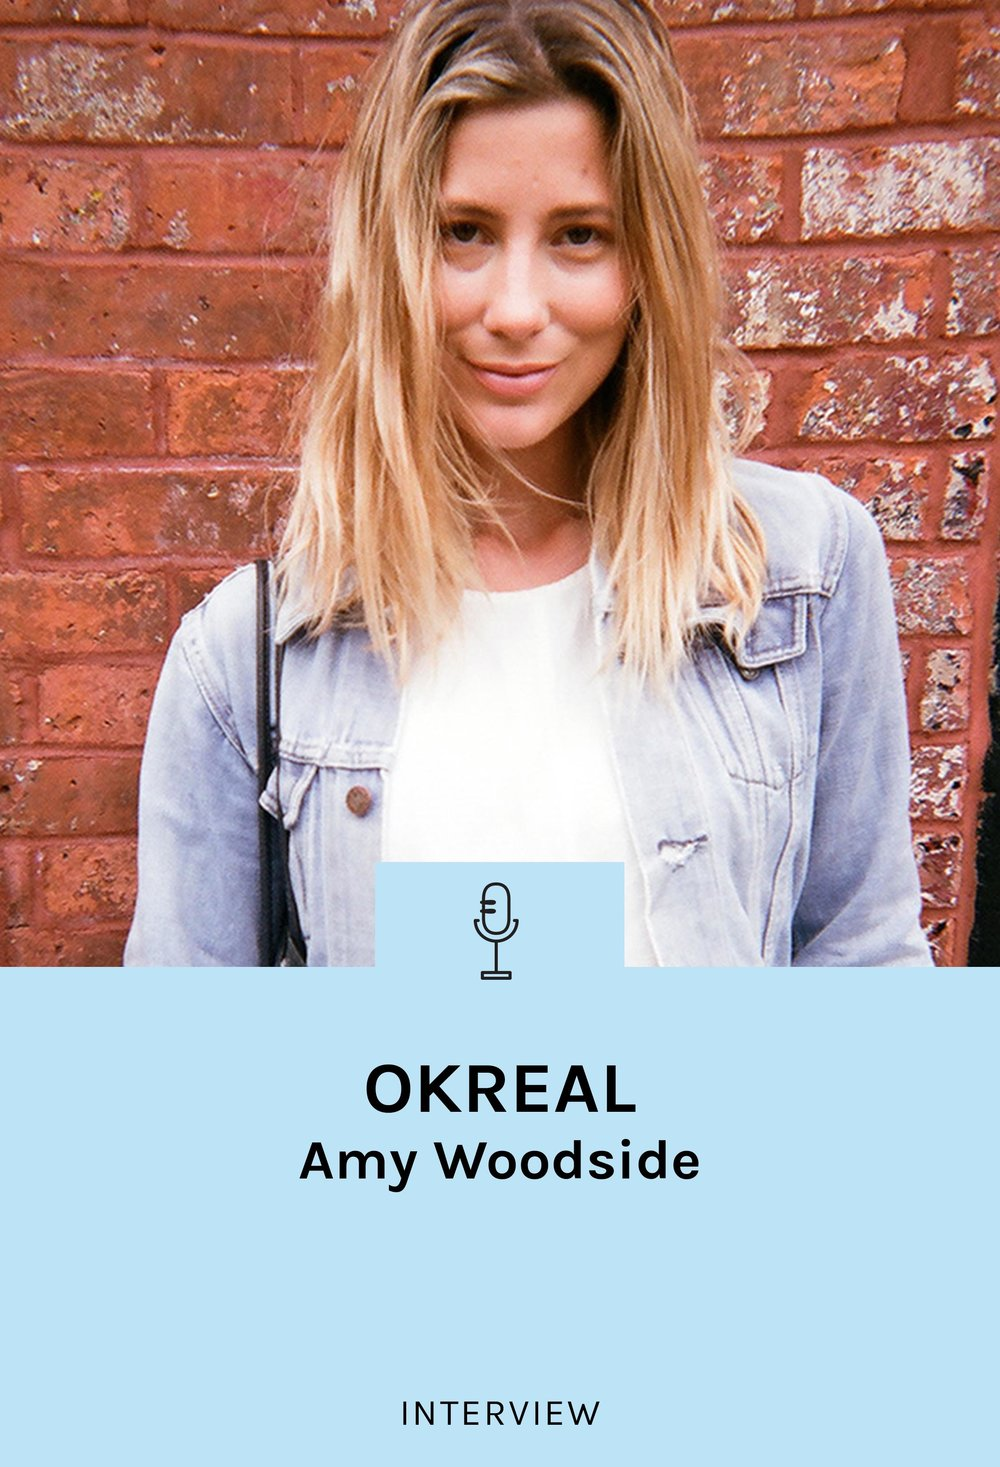 lisa-says-gah-interview-amy-woodside